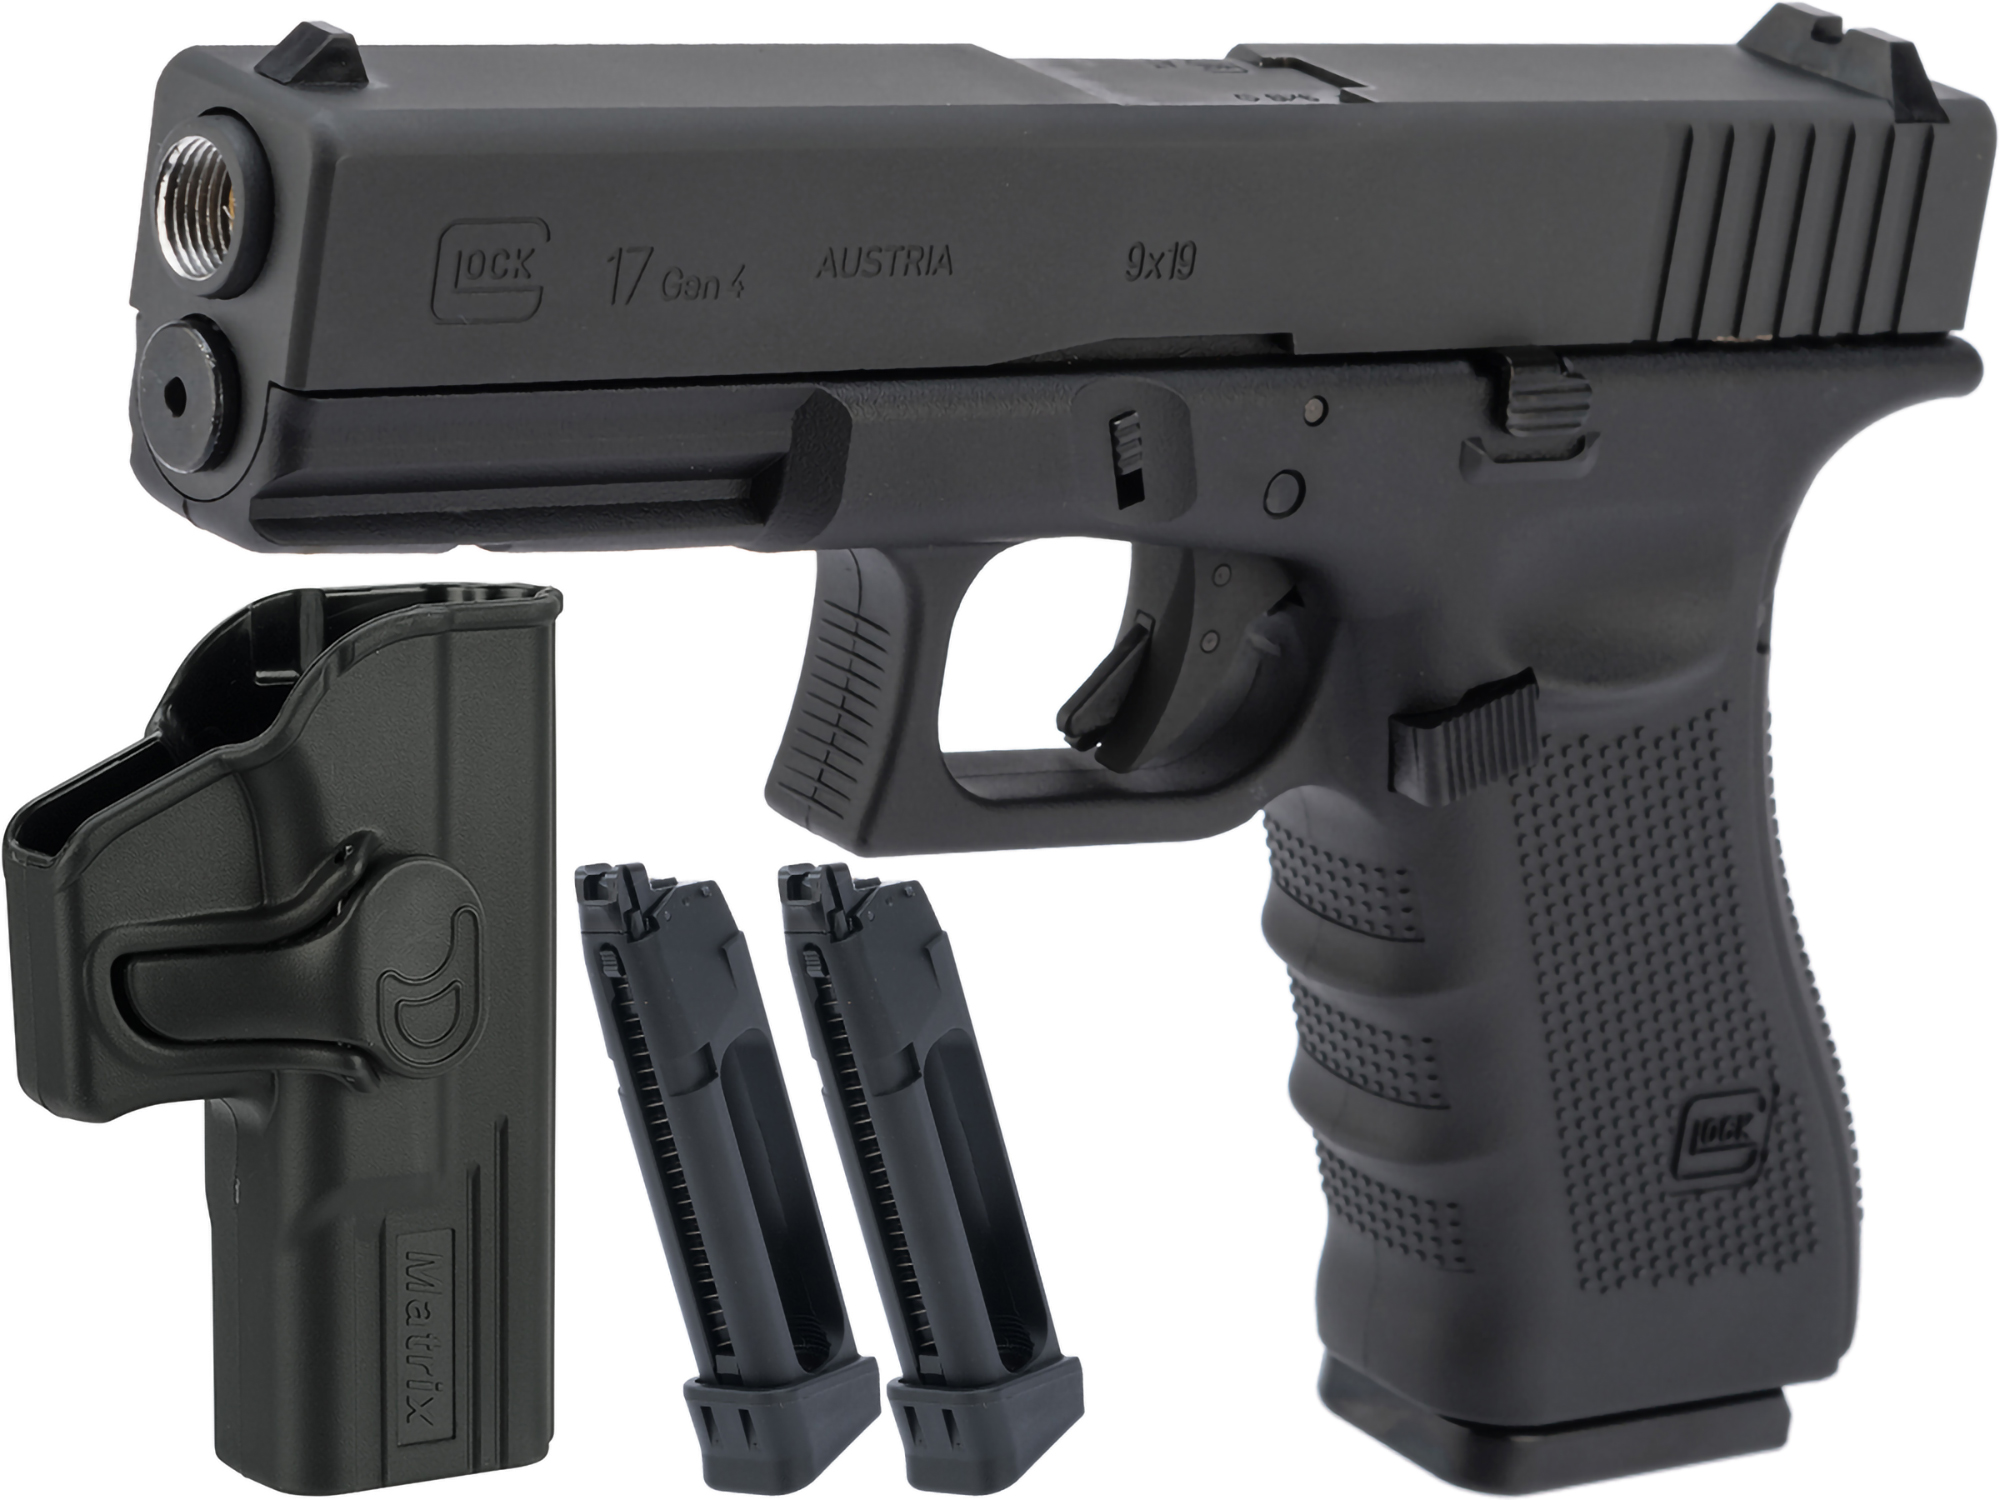 Umarex Fully Licensed GLOCK 17 Gen4 Gas Blowback Airsoft Training Pistol by KWC